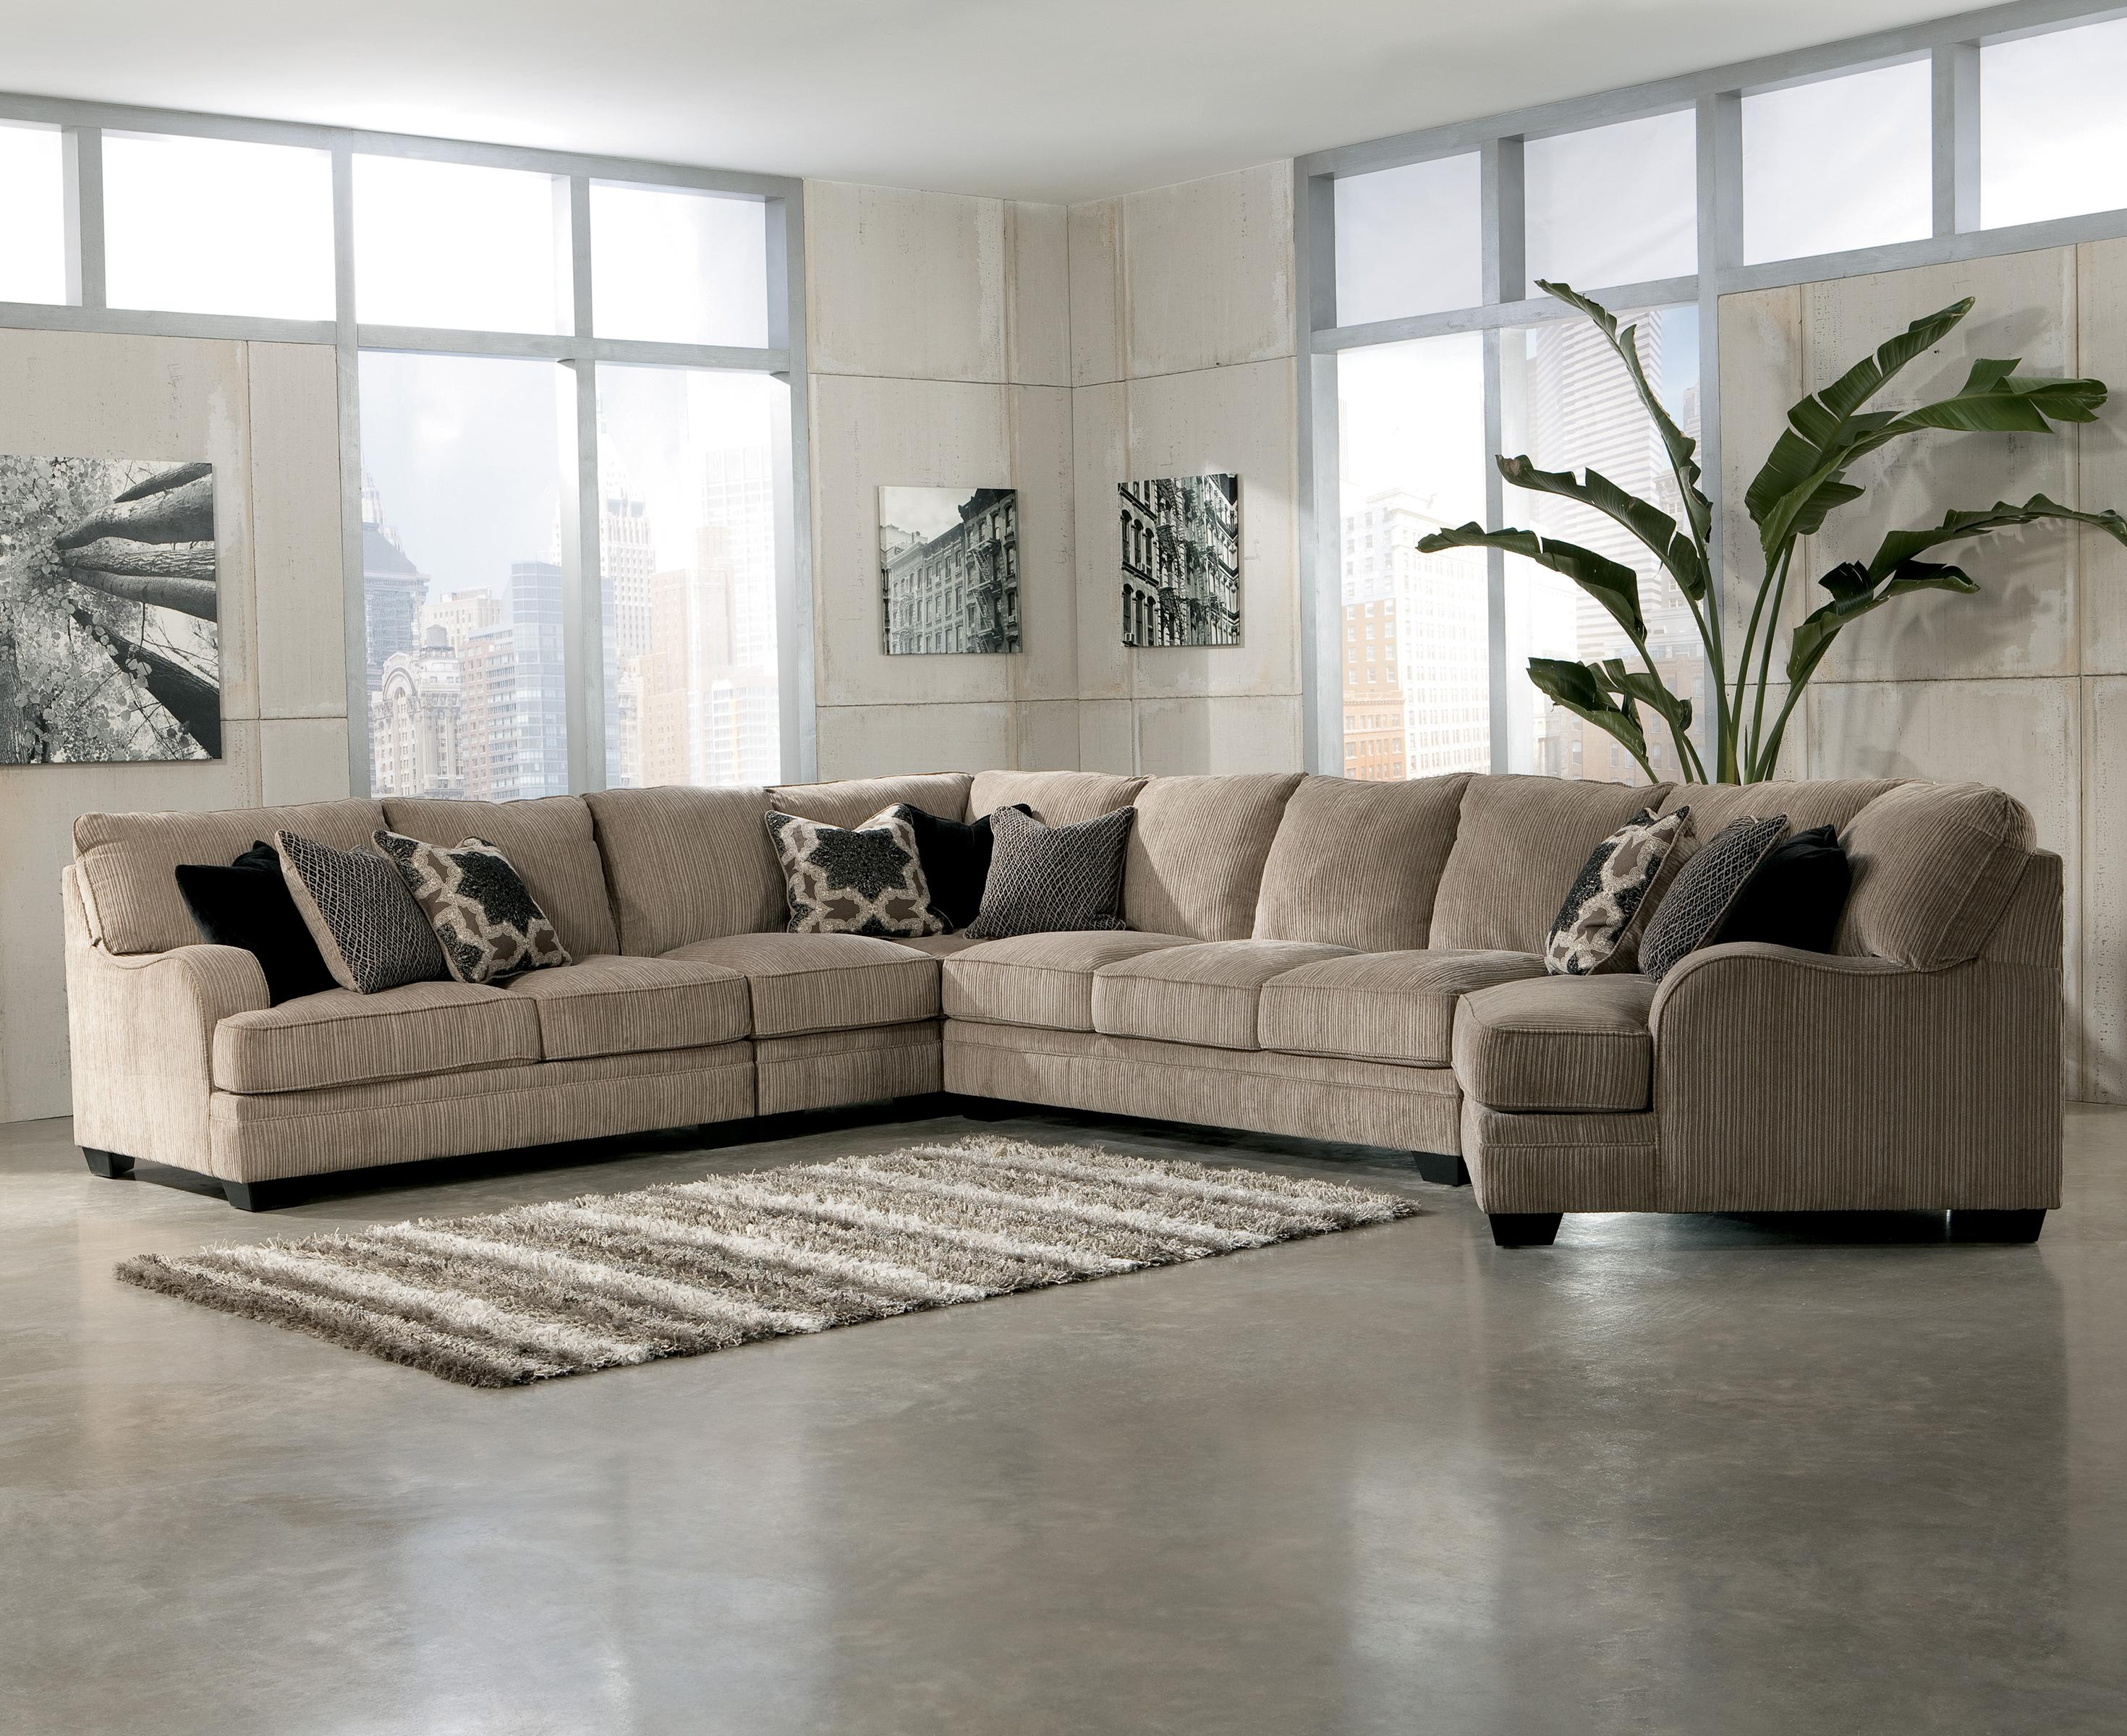 Signature Design by Ashley Katisha - Platinum 5-Piece Sectional Sofa with Right Cuddler - AHFA - Sofa Sectional Dealer Locator : sectional sofa cuddler - Sectionals, Sofas & Couches